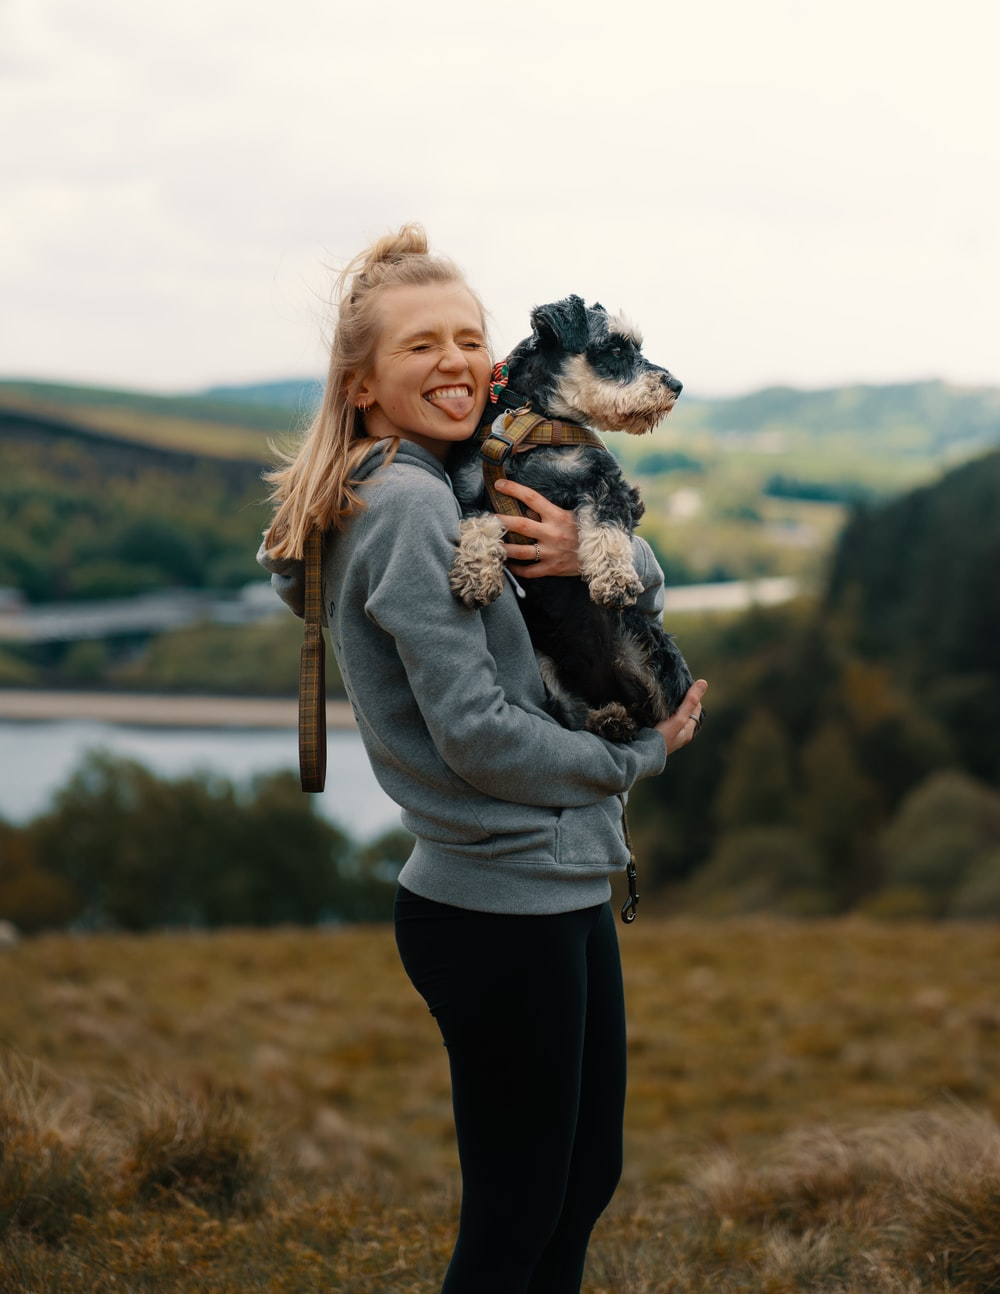 woman in gray jacket carrying black and white short coated small dog